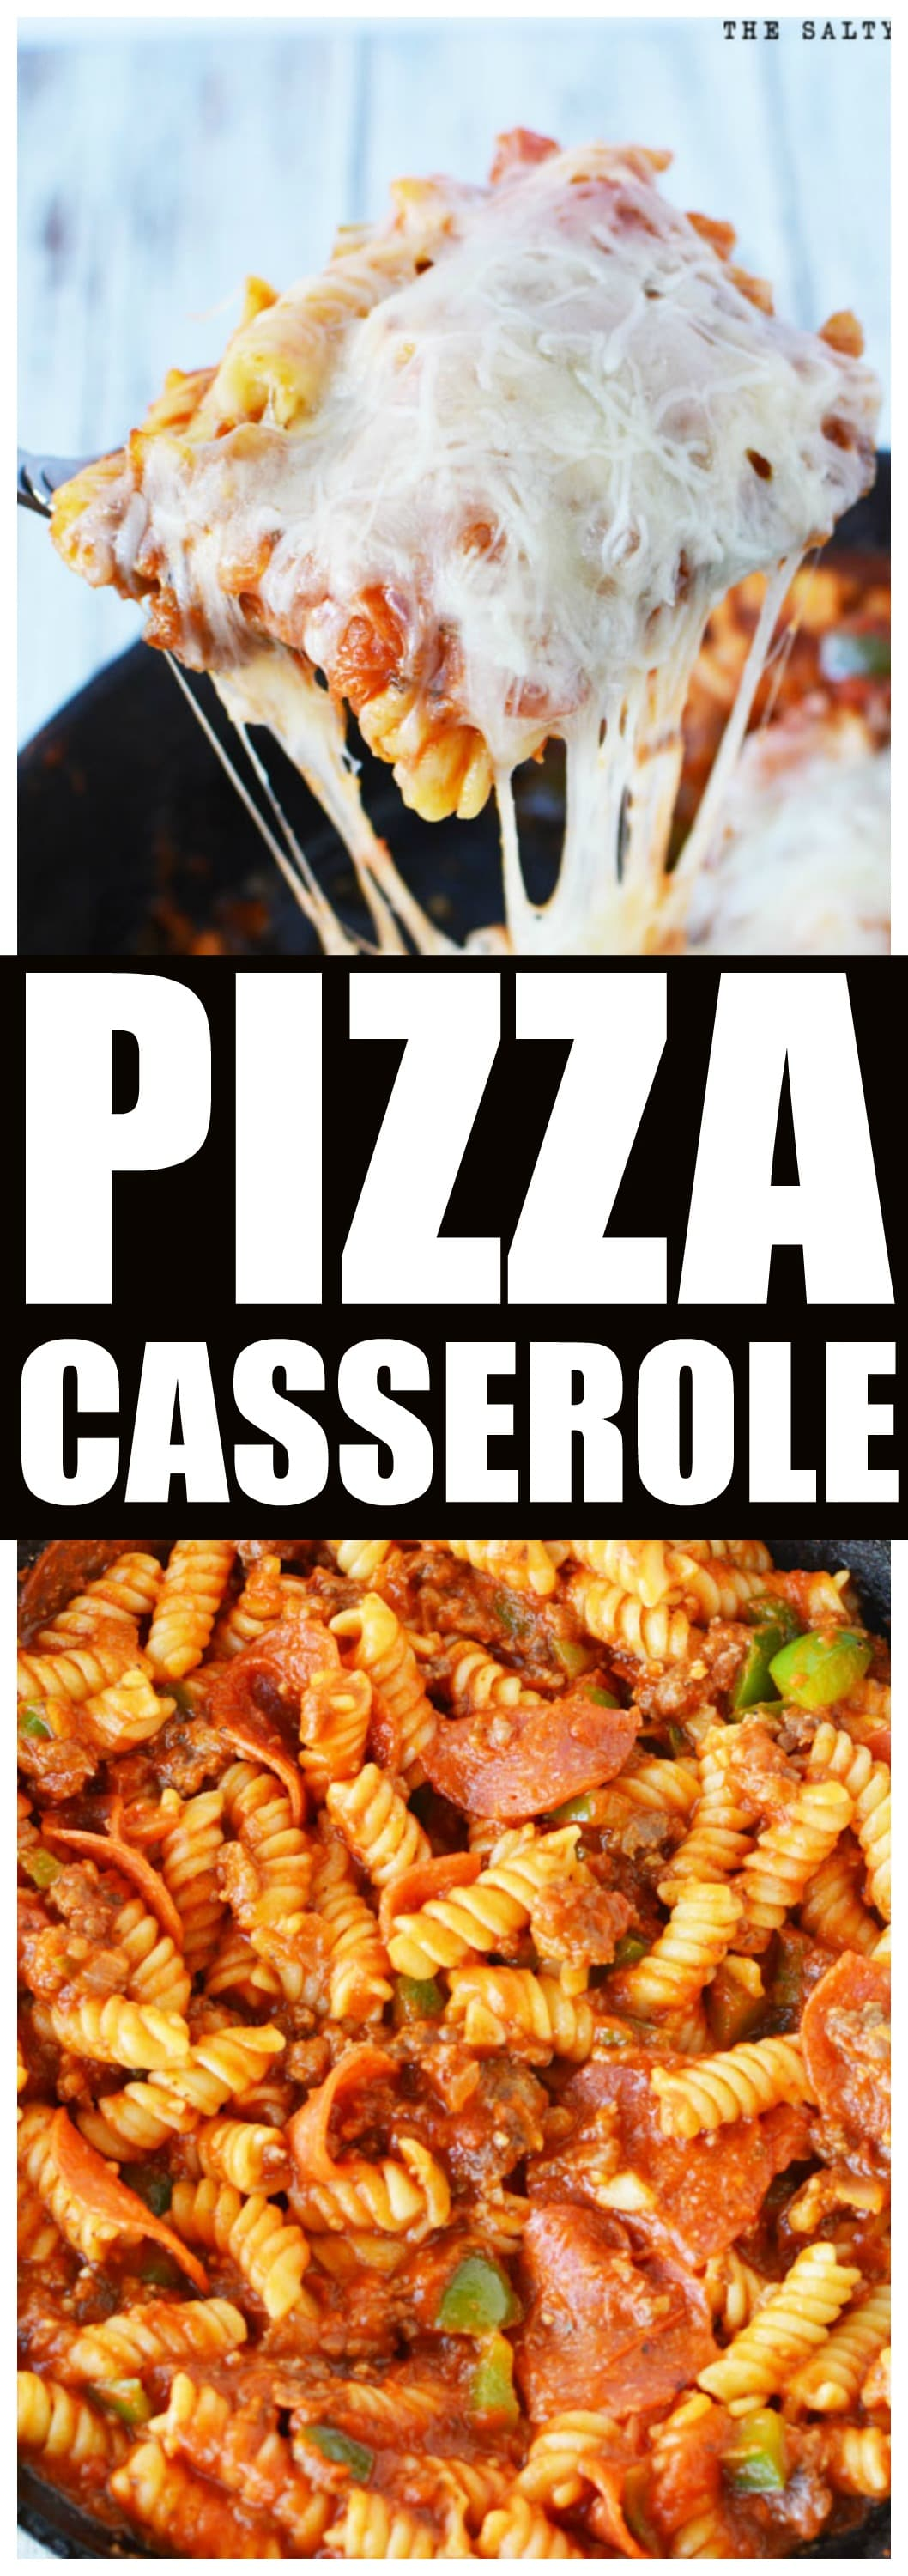 Pizza Casserole Hot Dish is an incredible pizza flavor that is FAST and EASY for any day of the week. KID FAVORITE! #recipes #pizza #pasta #maindish #homemade